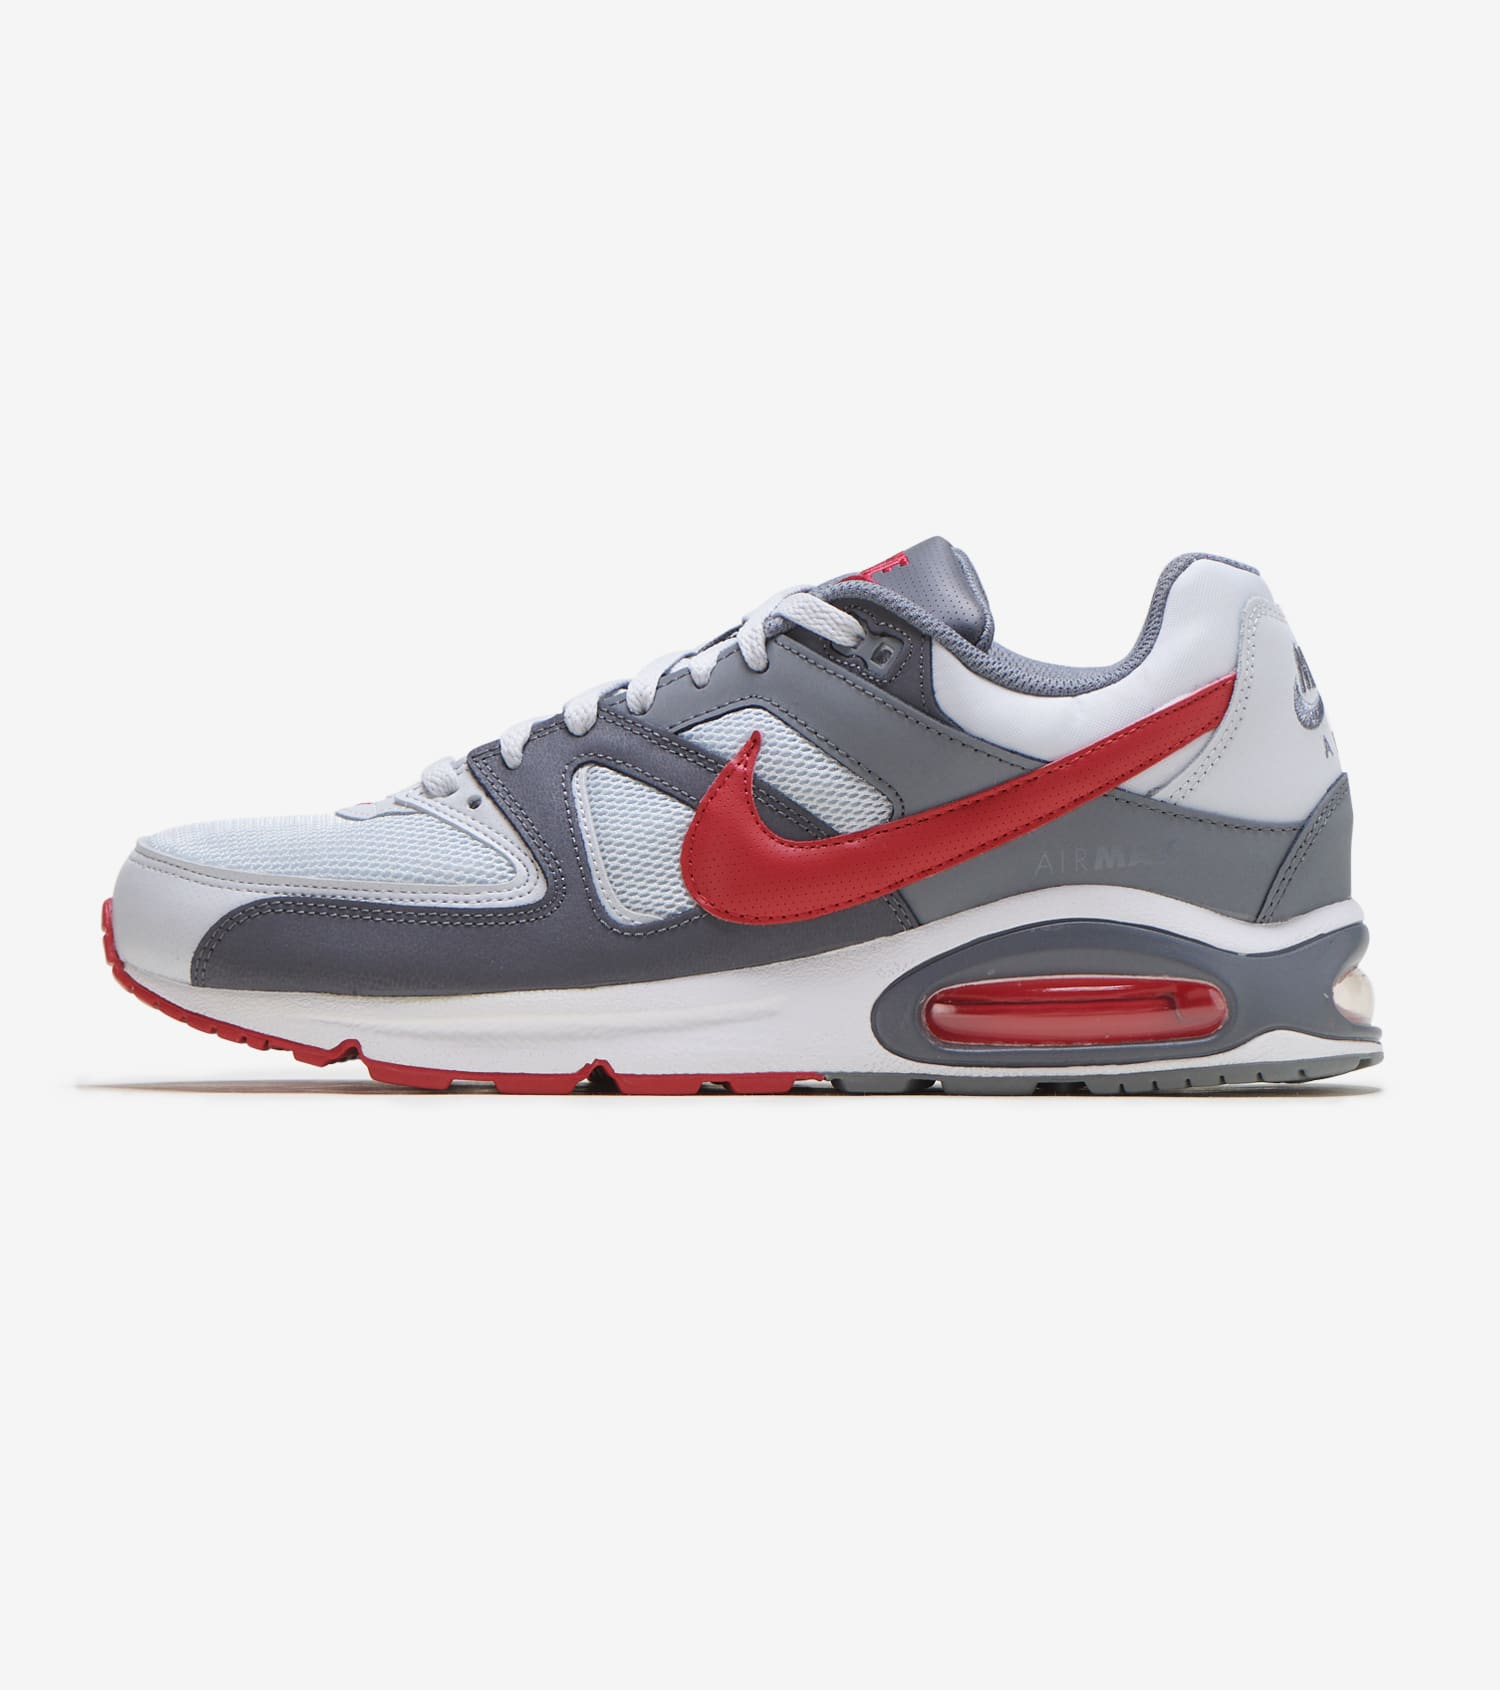 Nike Nike Nike air max command Free And Fast Shipping Brands